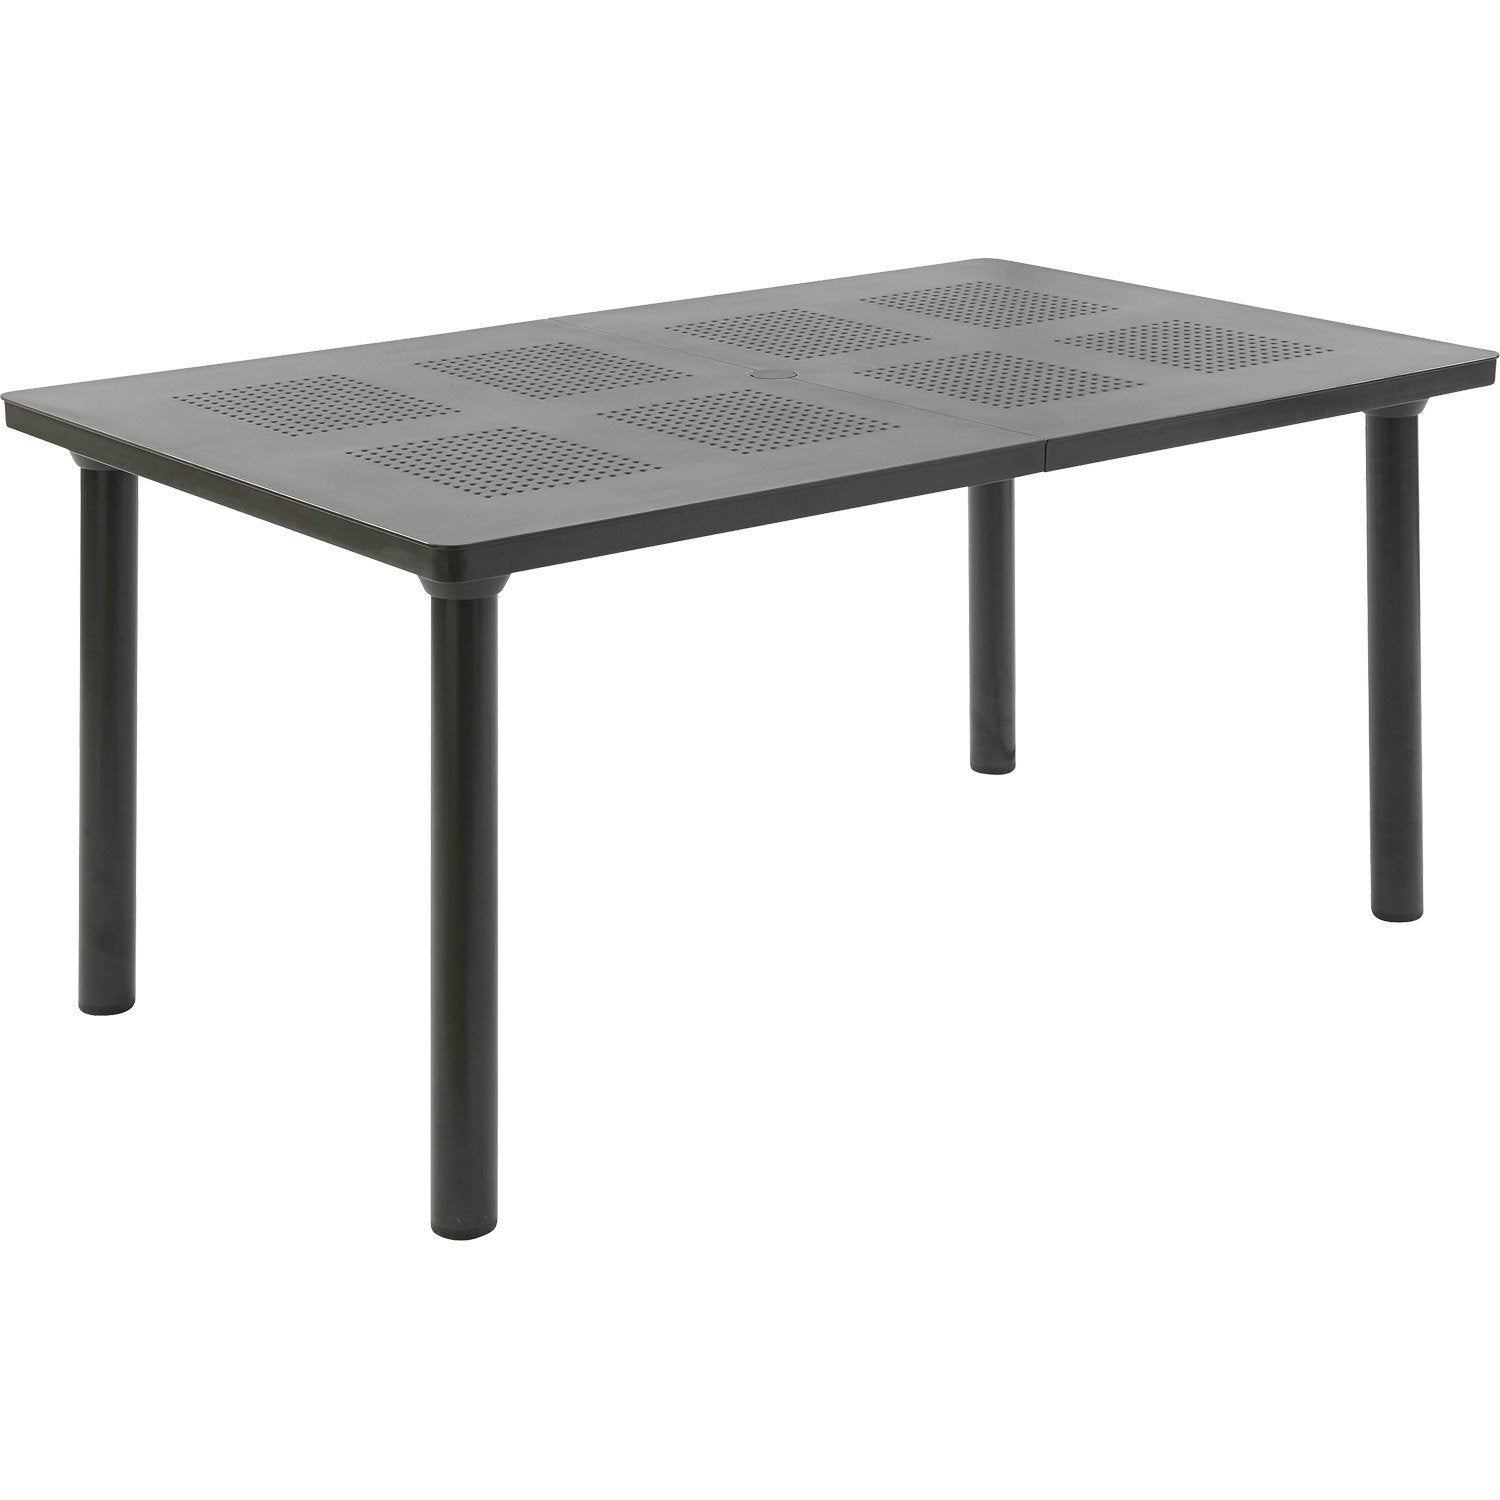 Table de jardin plastique but - Table de jardin resine blanche ...